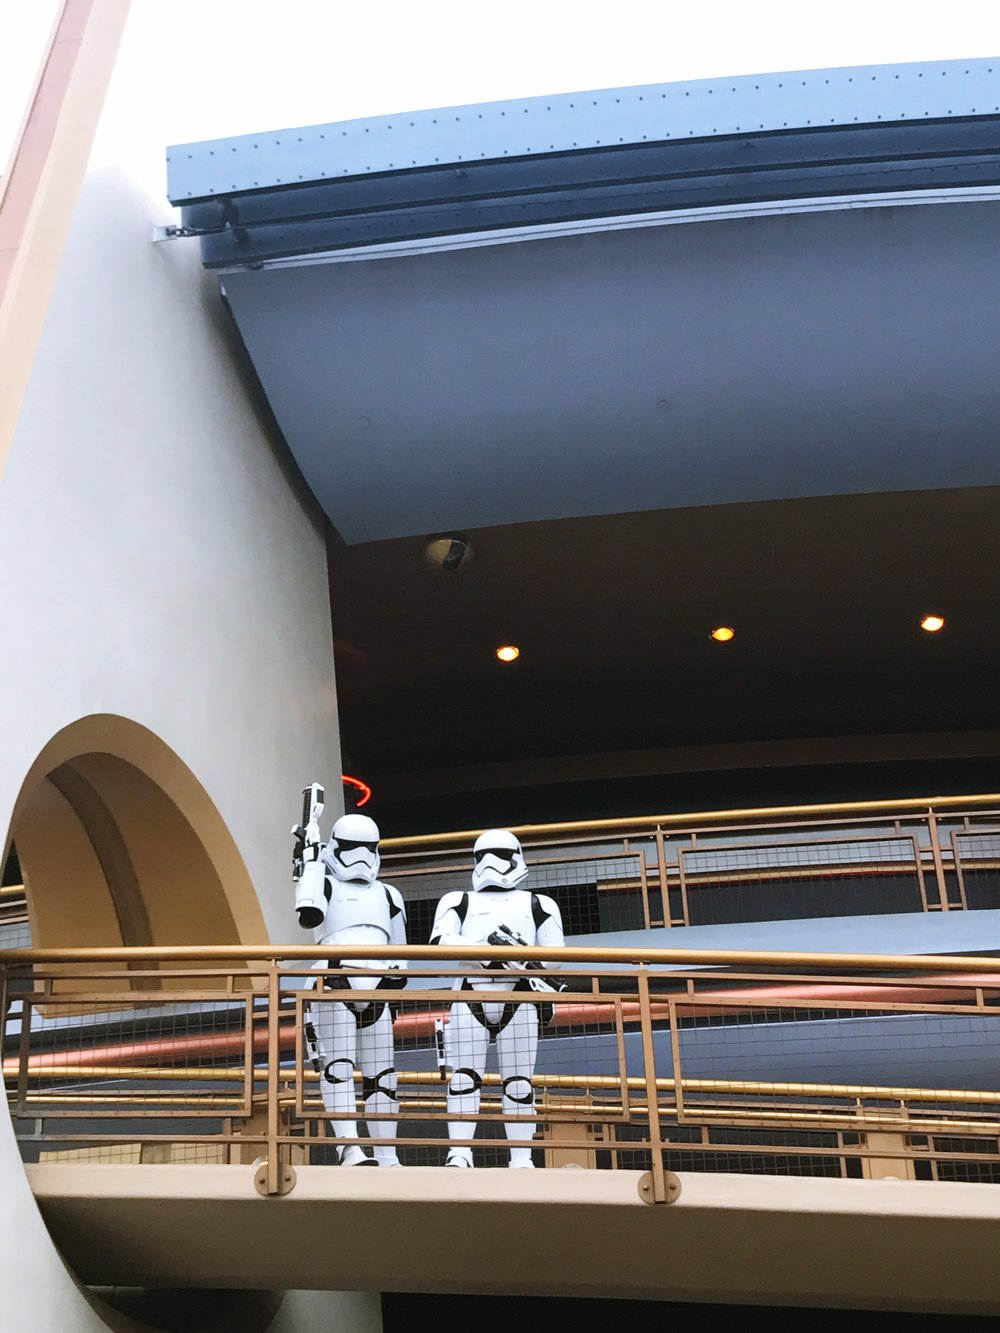 Stormtroopers watching over the walkers in Tomorrowland!